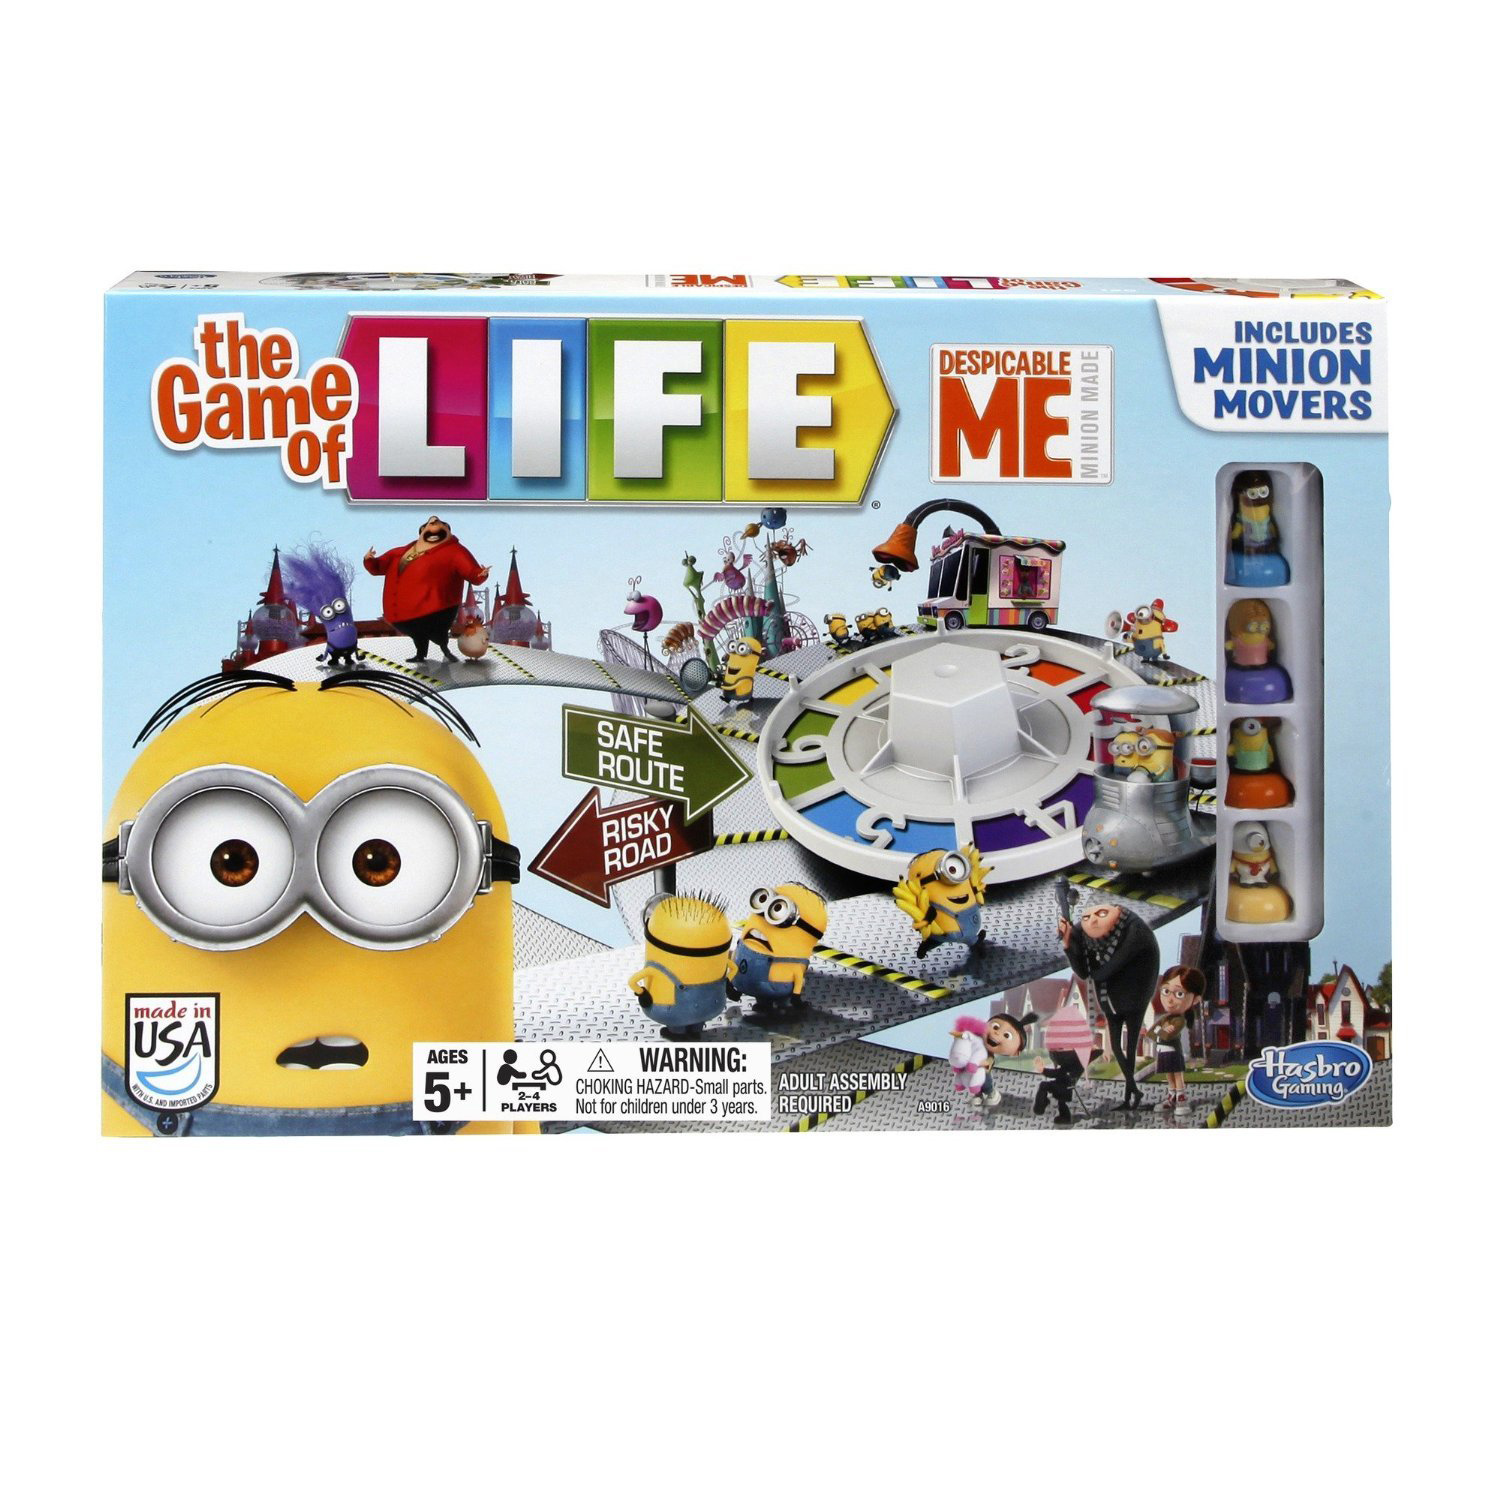 the game of life despicable me instructions